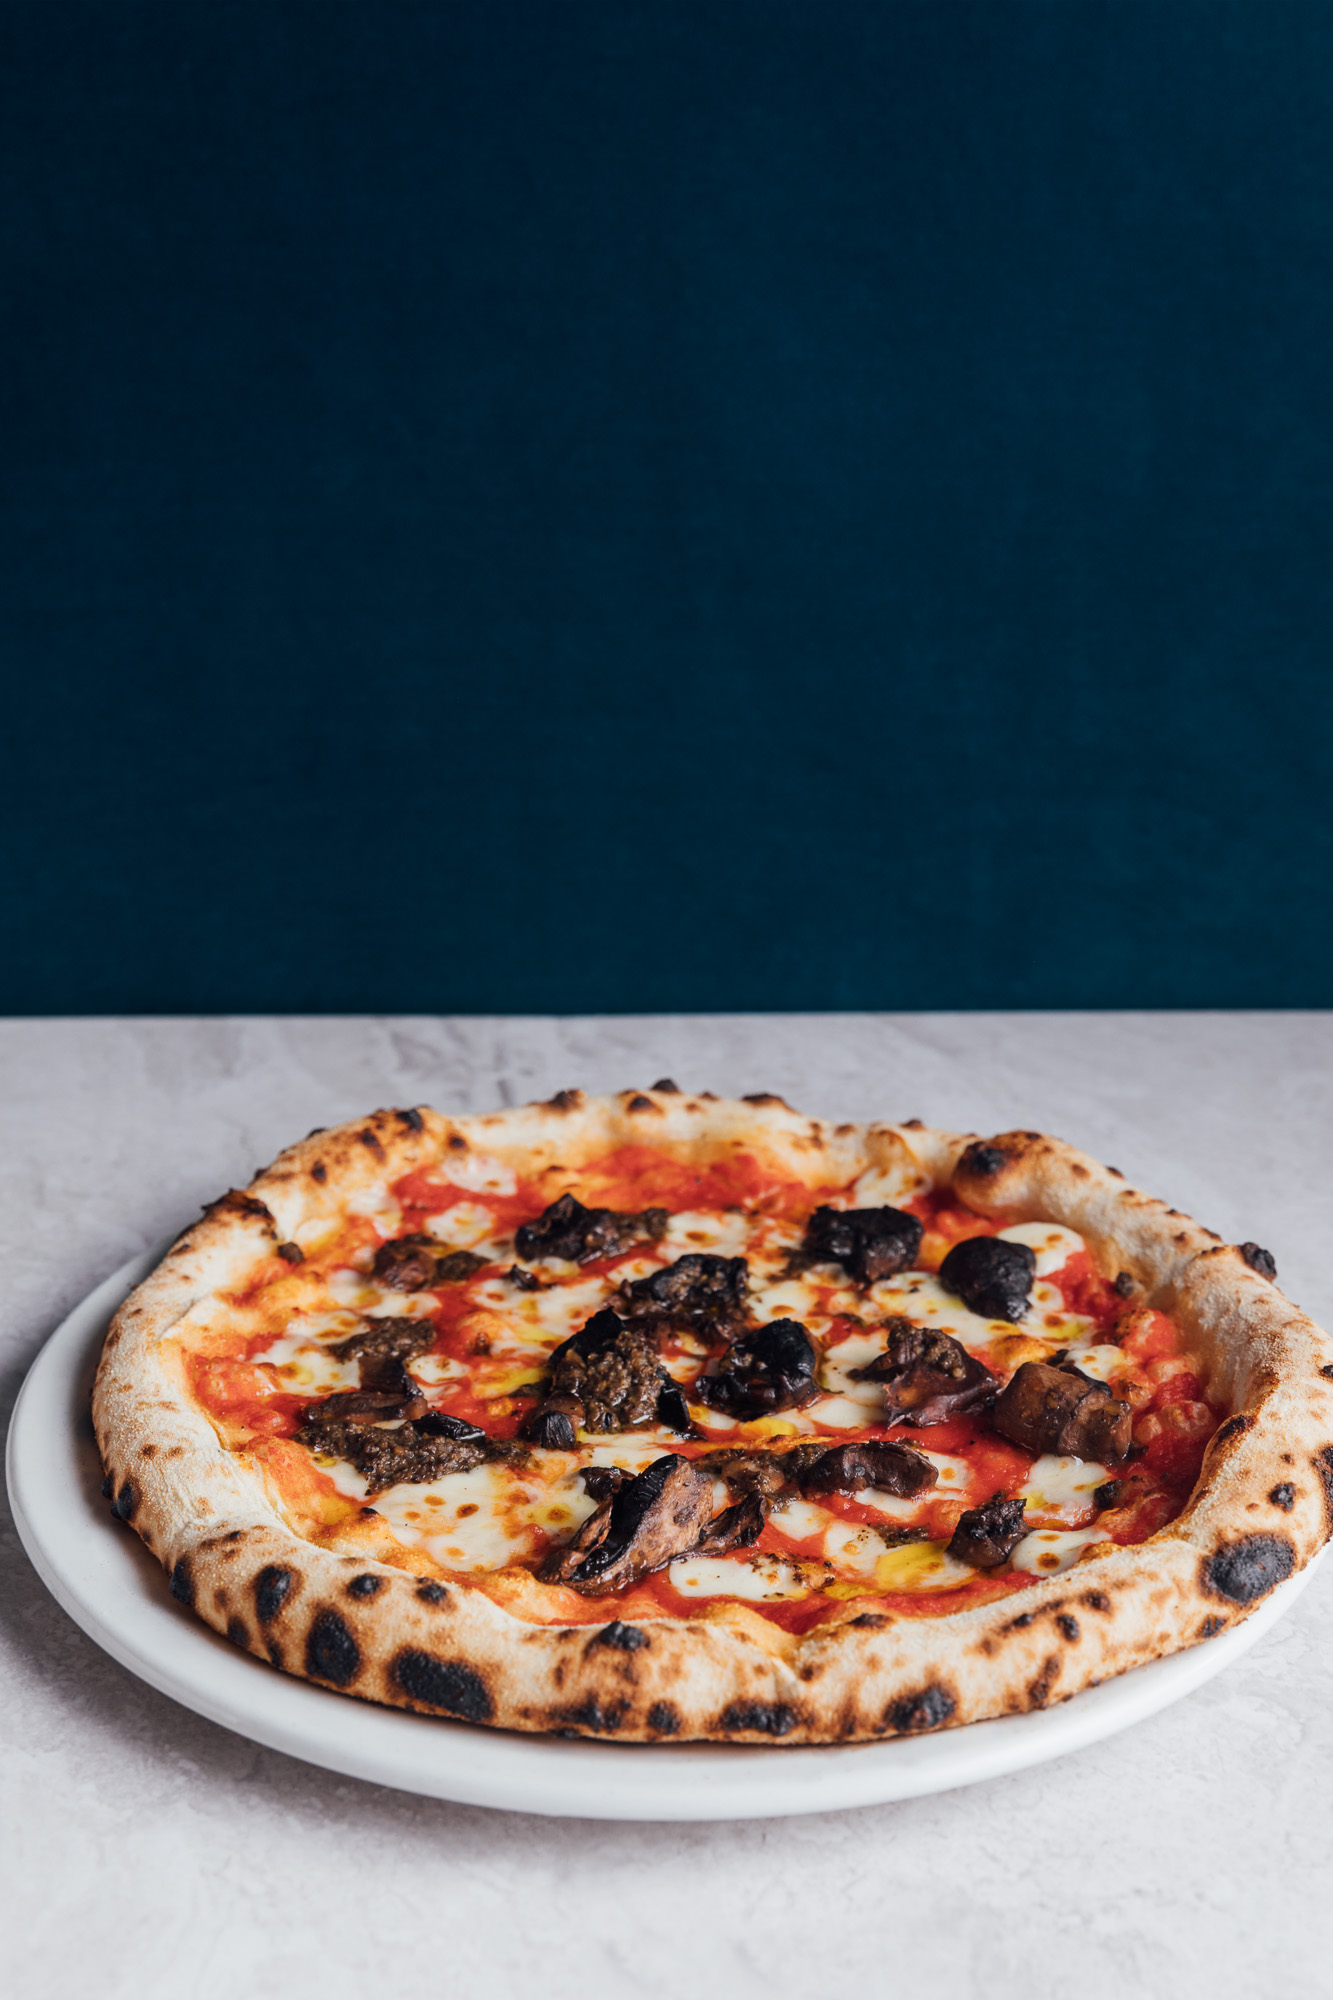 Wood Fired Funghi Pizza at The Beech House pub and restaurant in Amersham Buckinghamshire.jpg